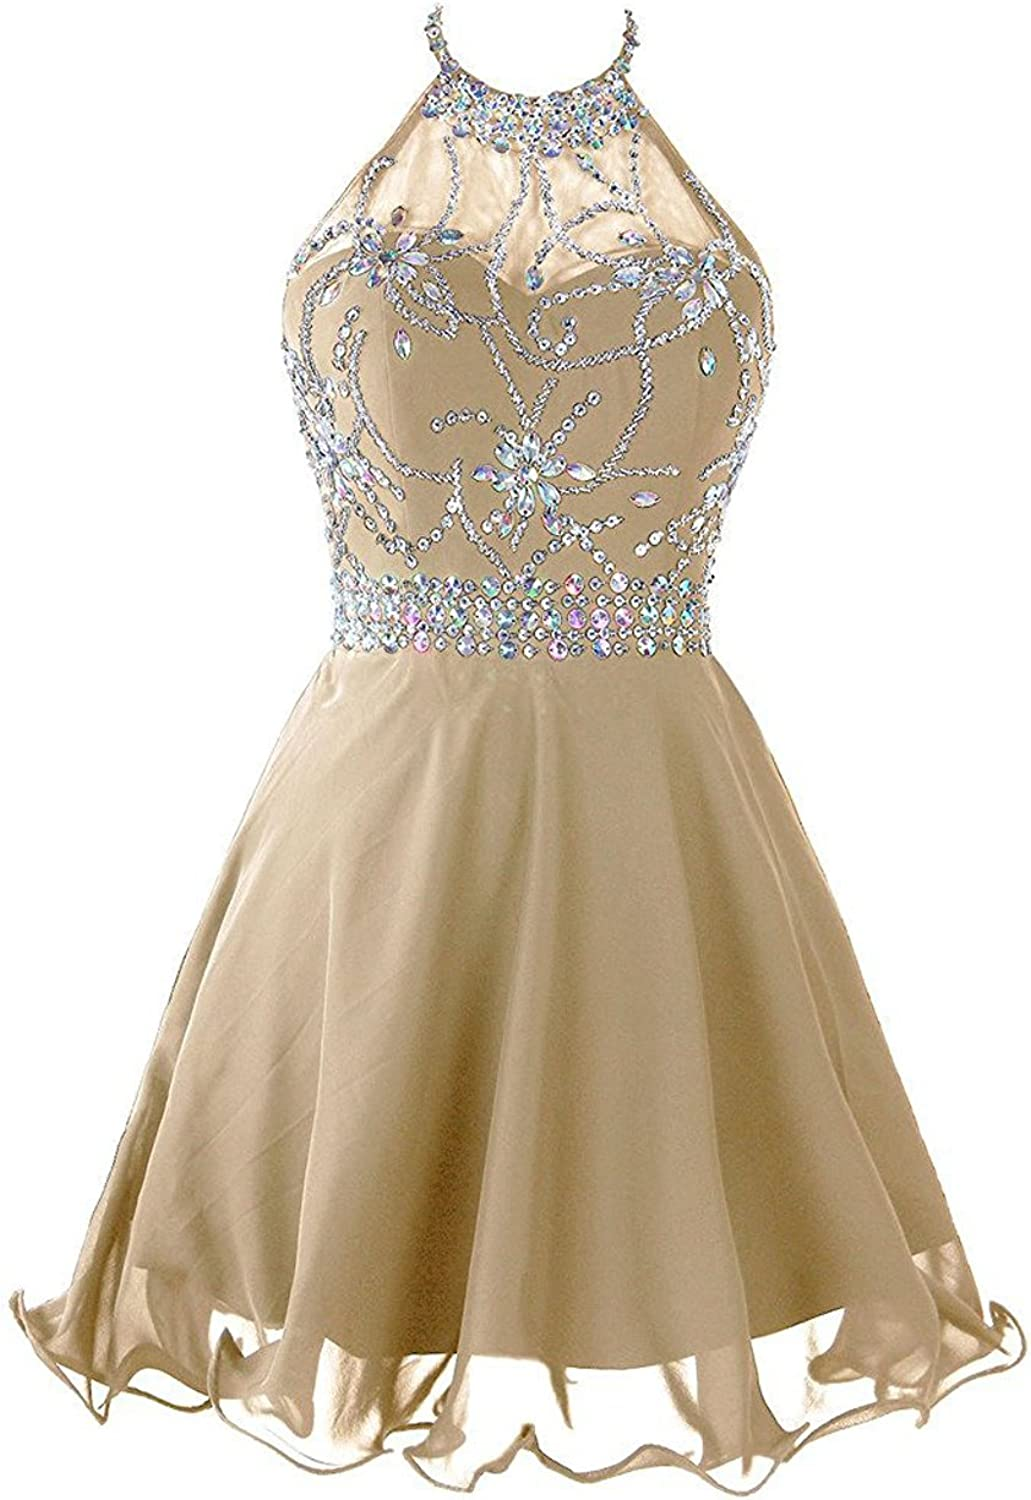 Beilite Women's Short Beaded Prom Dress Backless Hater Cooktail Party Dress